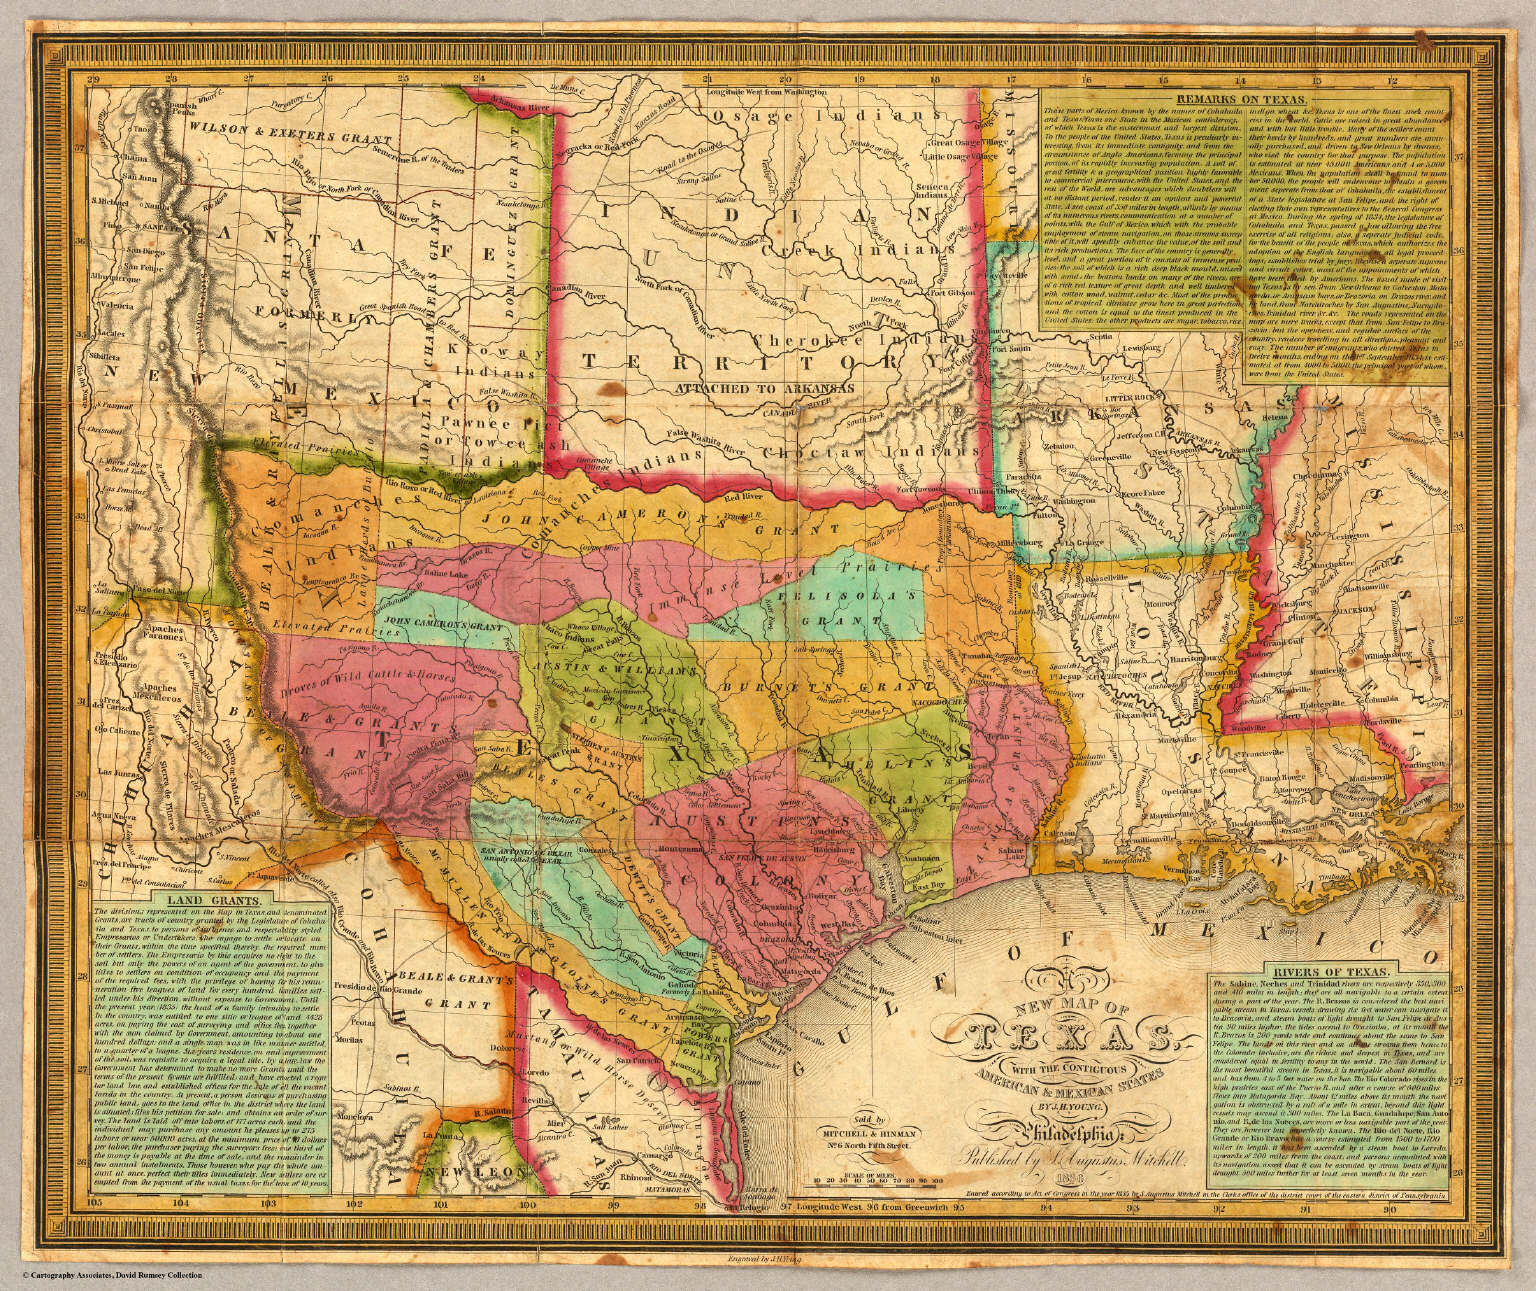 A New Map Of Texas, With The Contiguous American & Mexican States ...